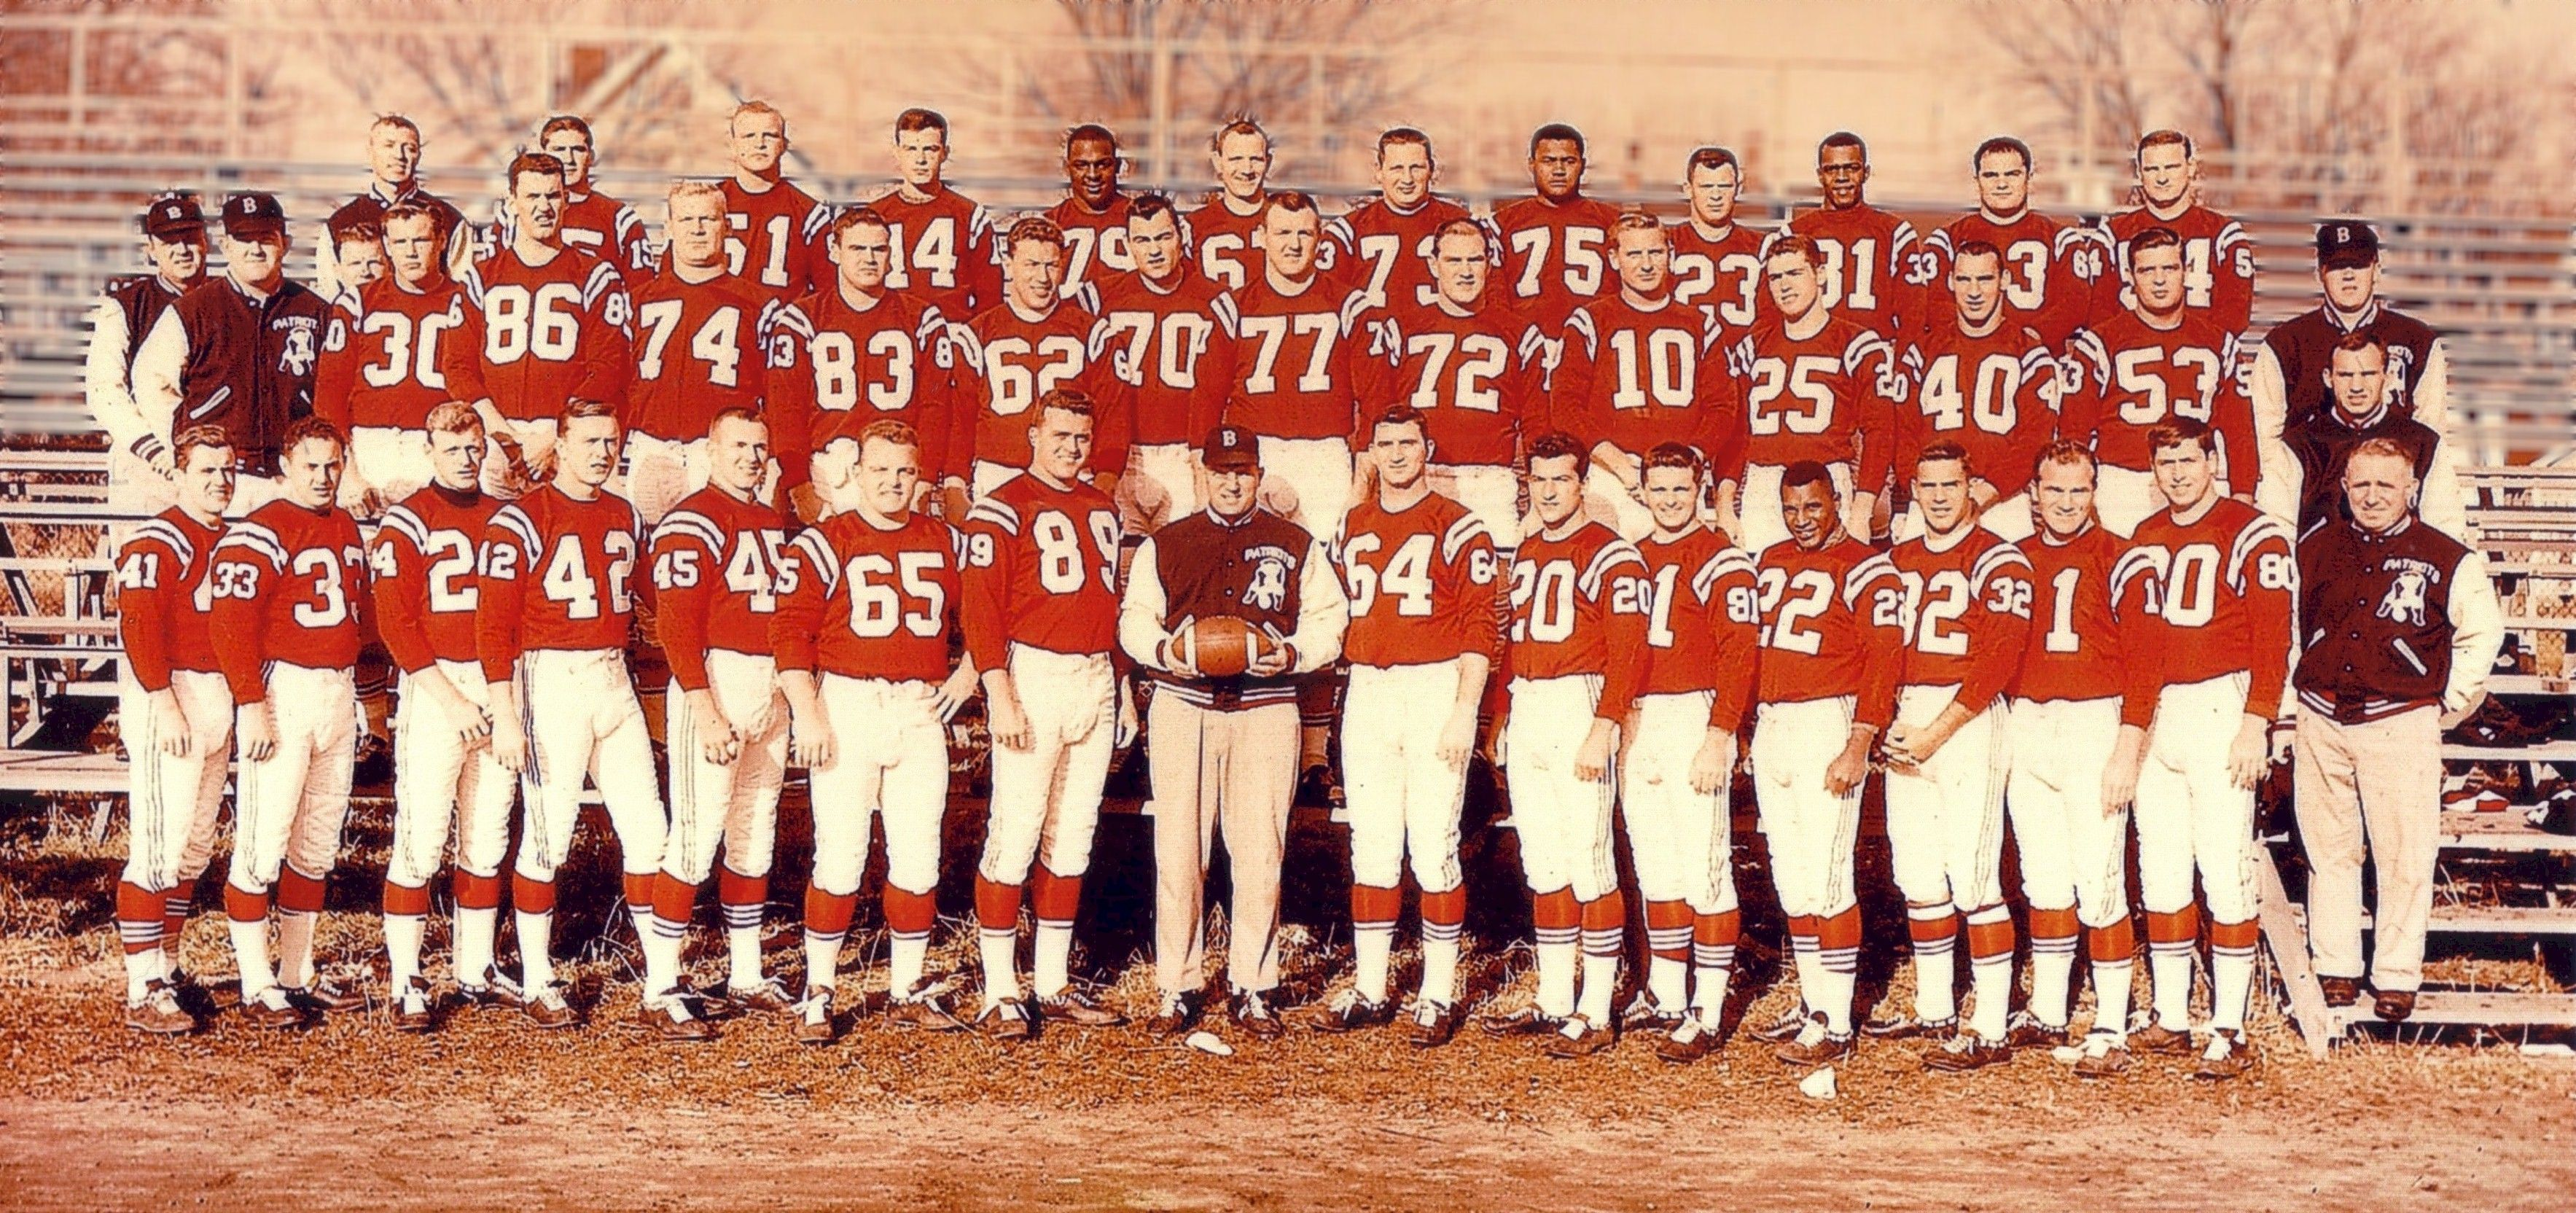 1960 Boston Patriots First Original Team Patriots Team American Football League Team Photos